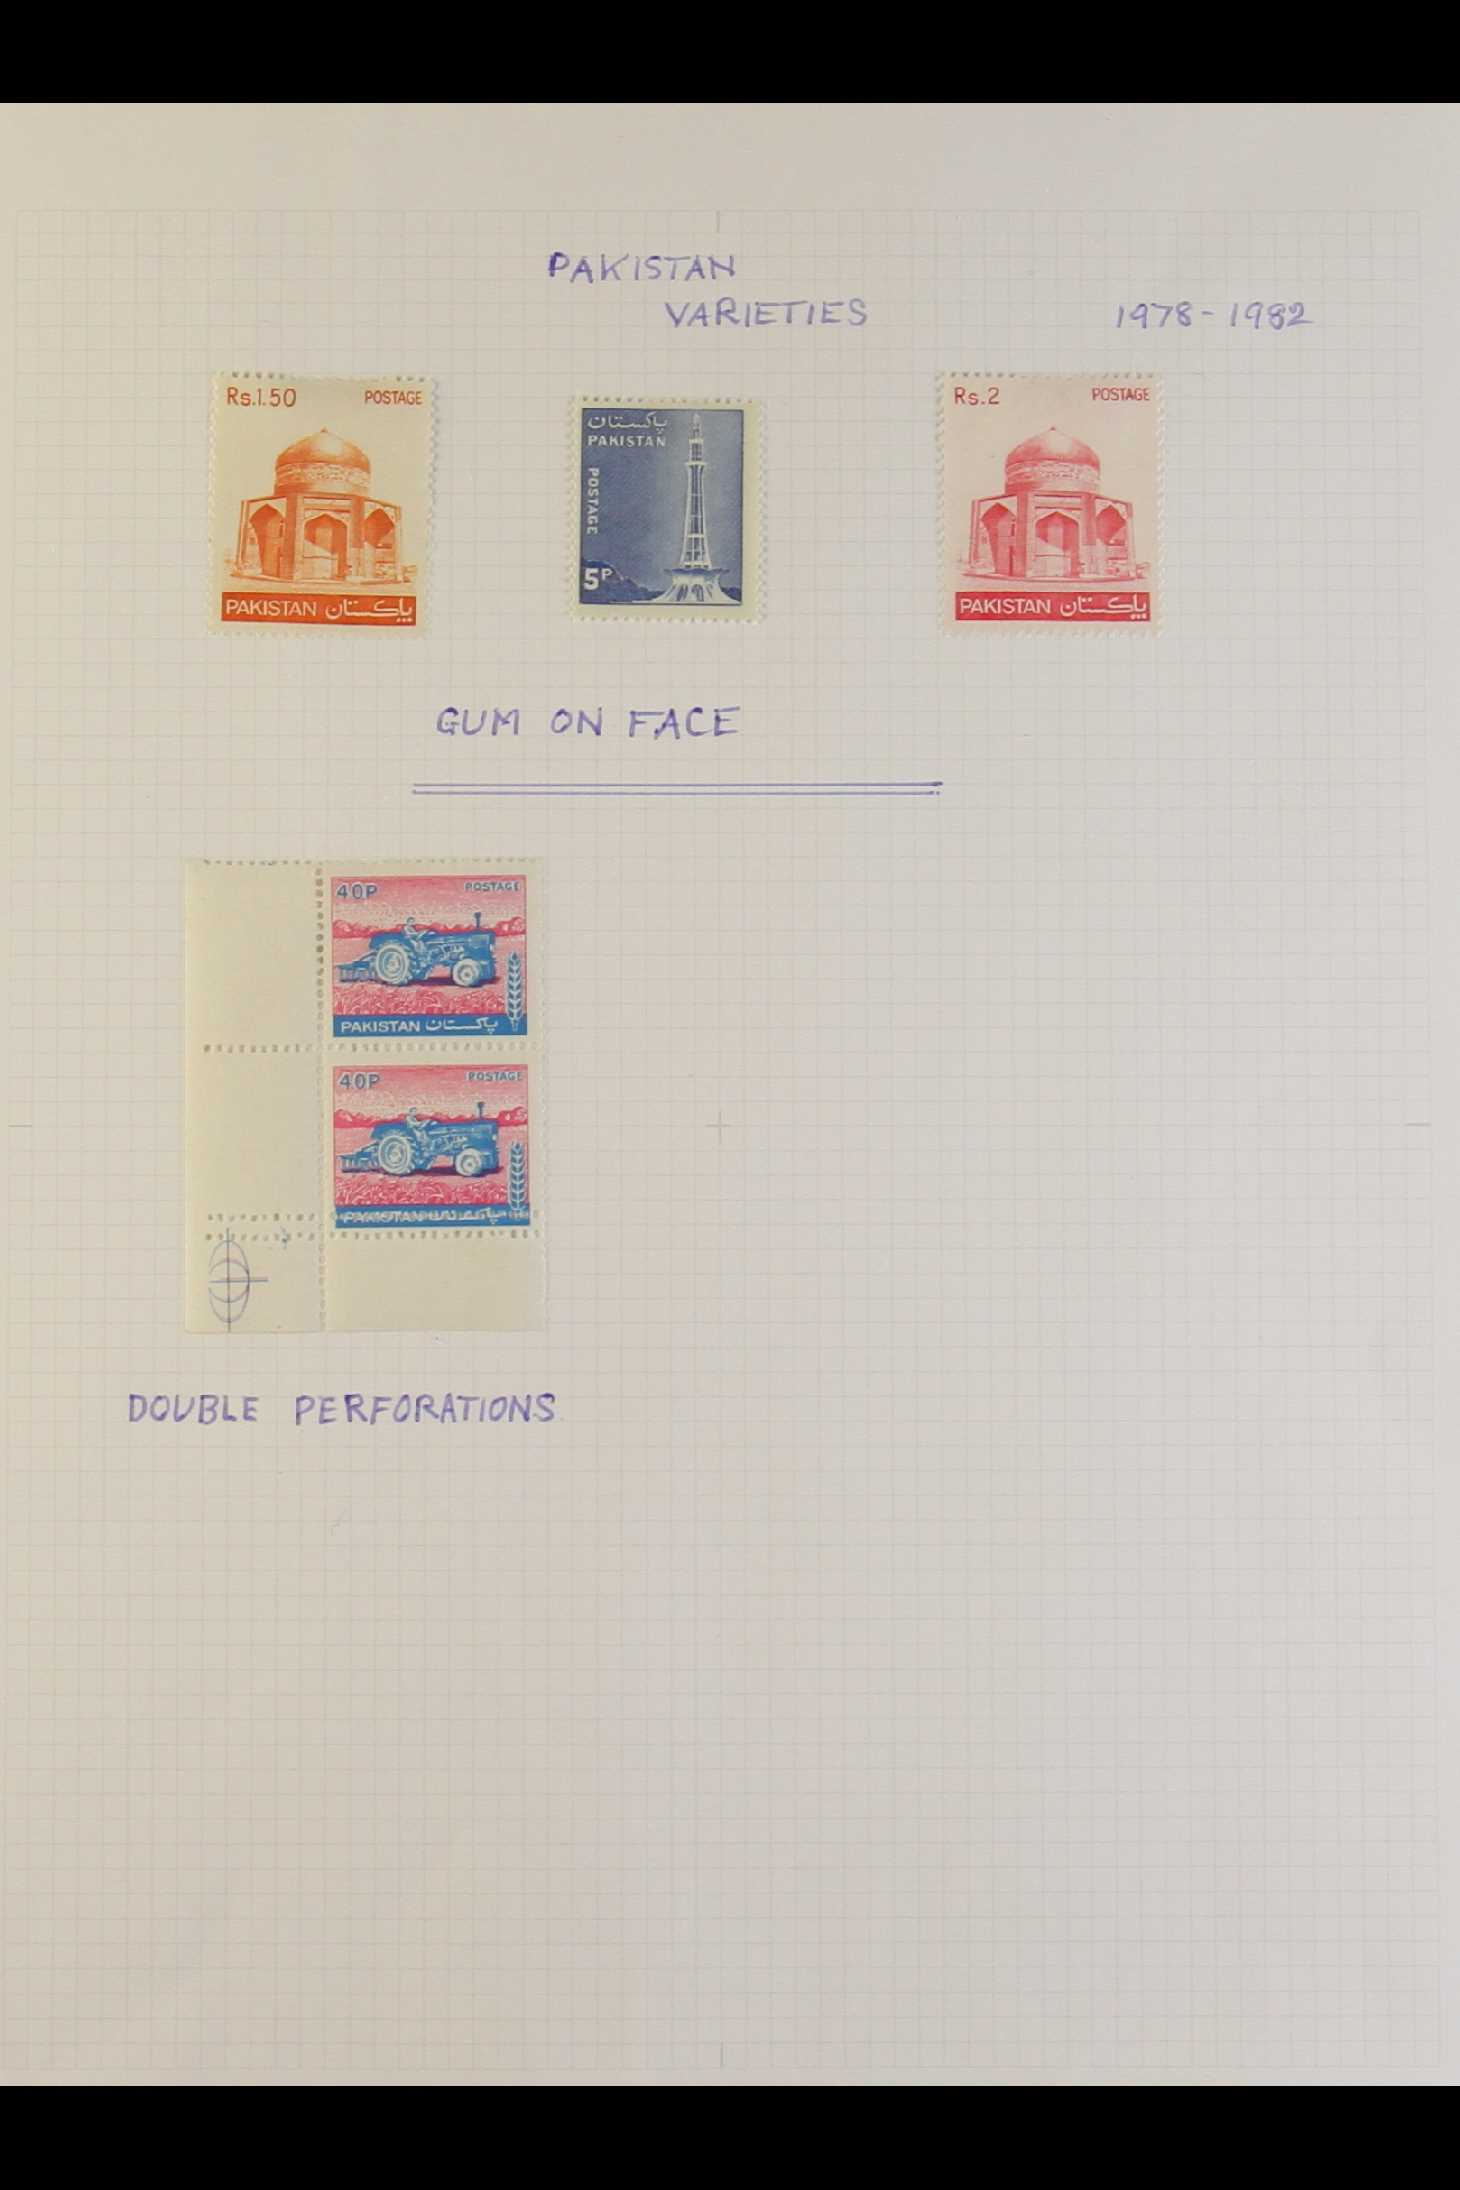 PAKISTAN 1960-2000 VARIETIES COLLECTION mint or nhm incl. 1960 Revolution Day 2a pink OMITTED, - Image 6 of 9